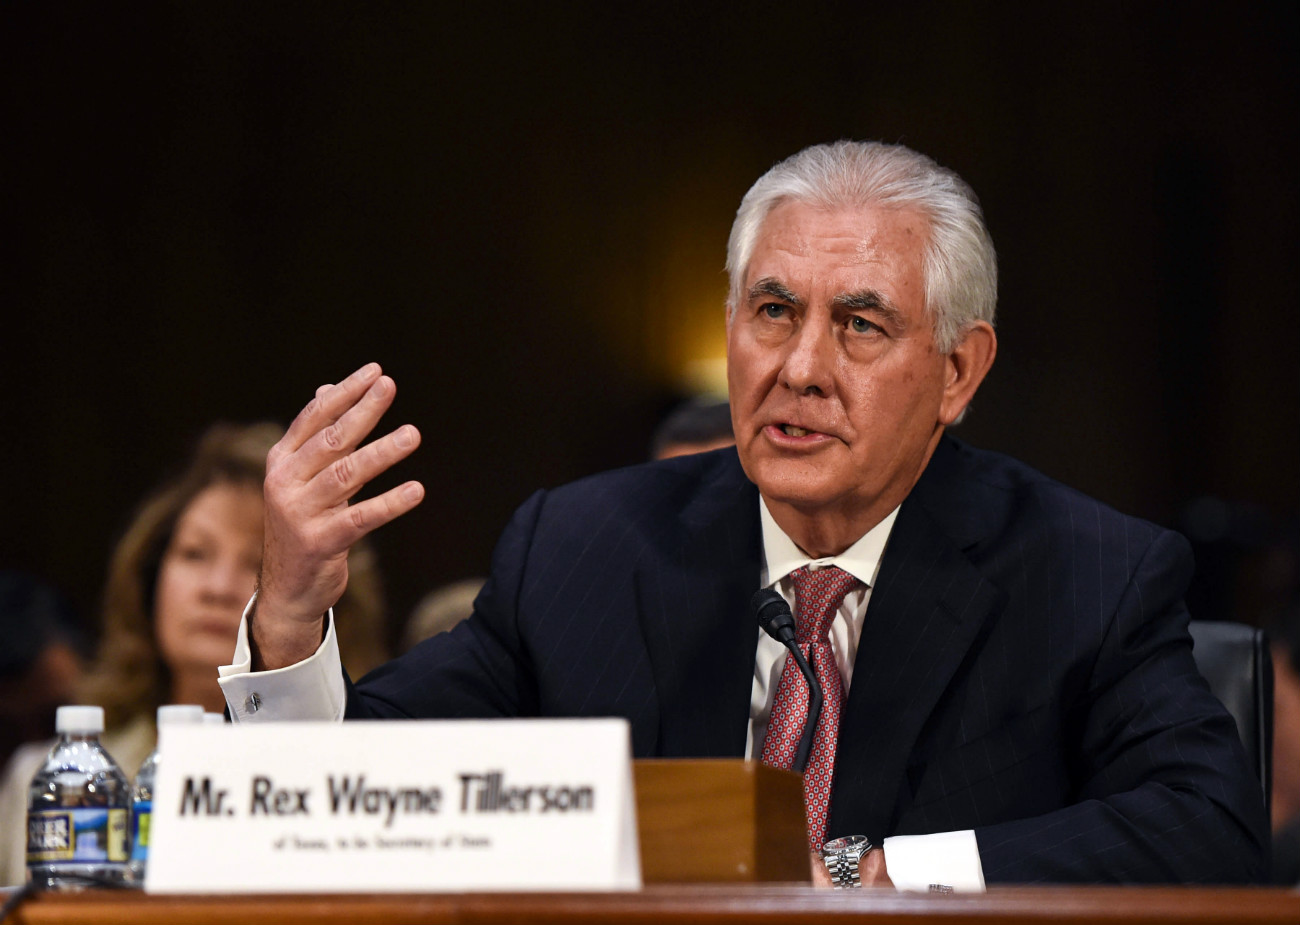 Rex Tillerson testifies before the U.S. Senate Foreign Relations Committee during the confirmation hearing on his nomination to be U.S. secretary of state at Capitol Hill in Washington D.C., the United States, on Jan. 11, 2017.